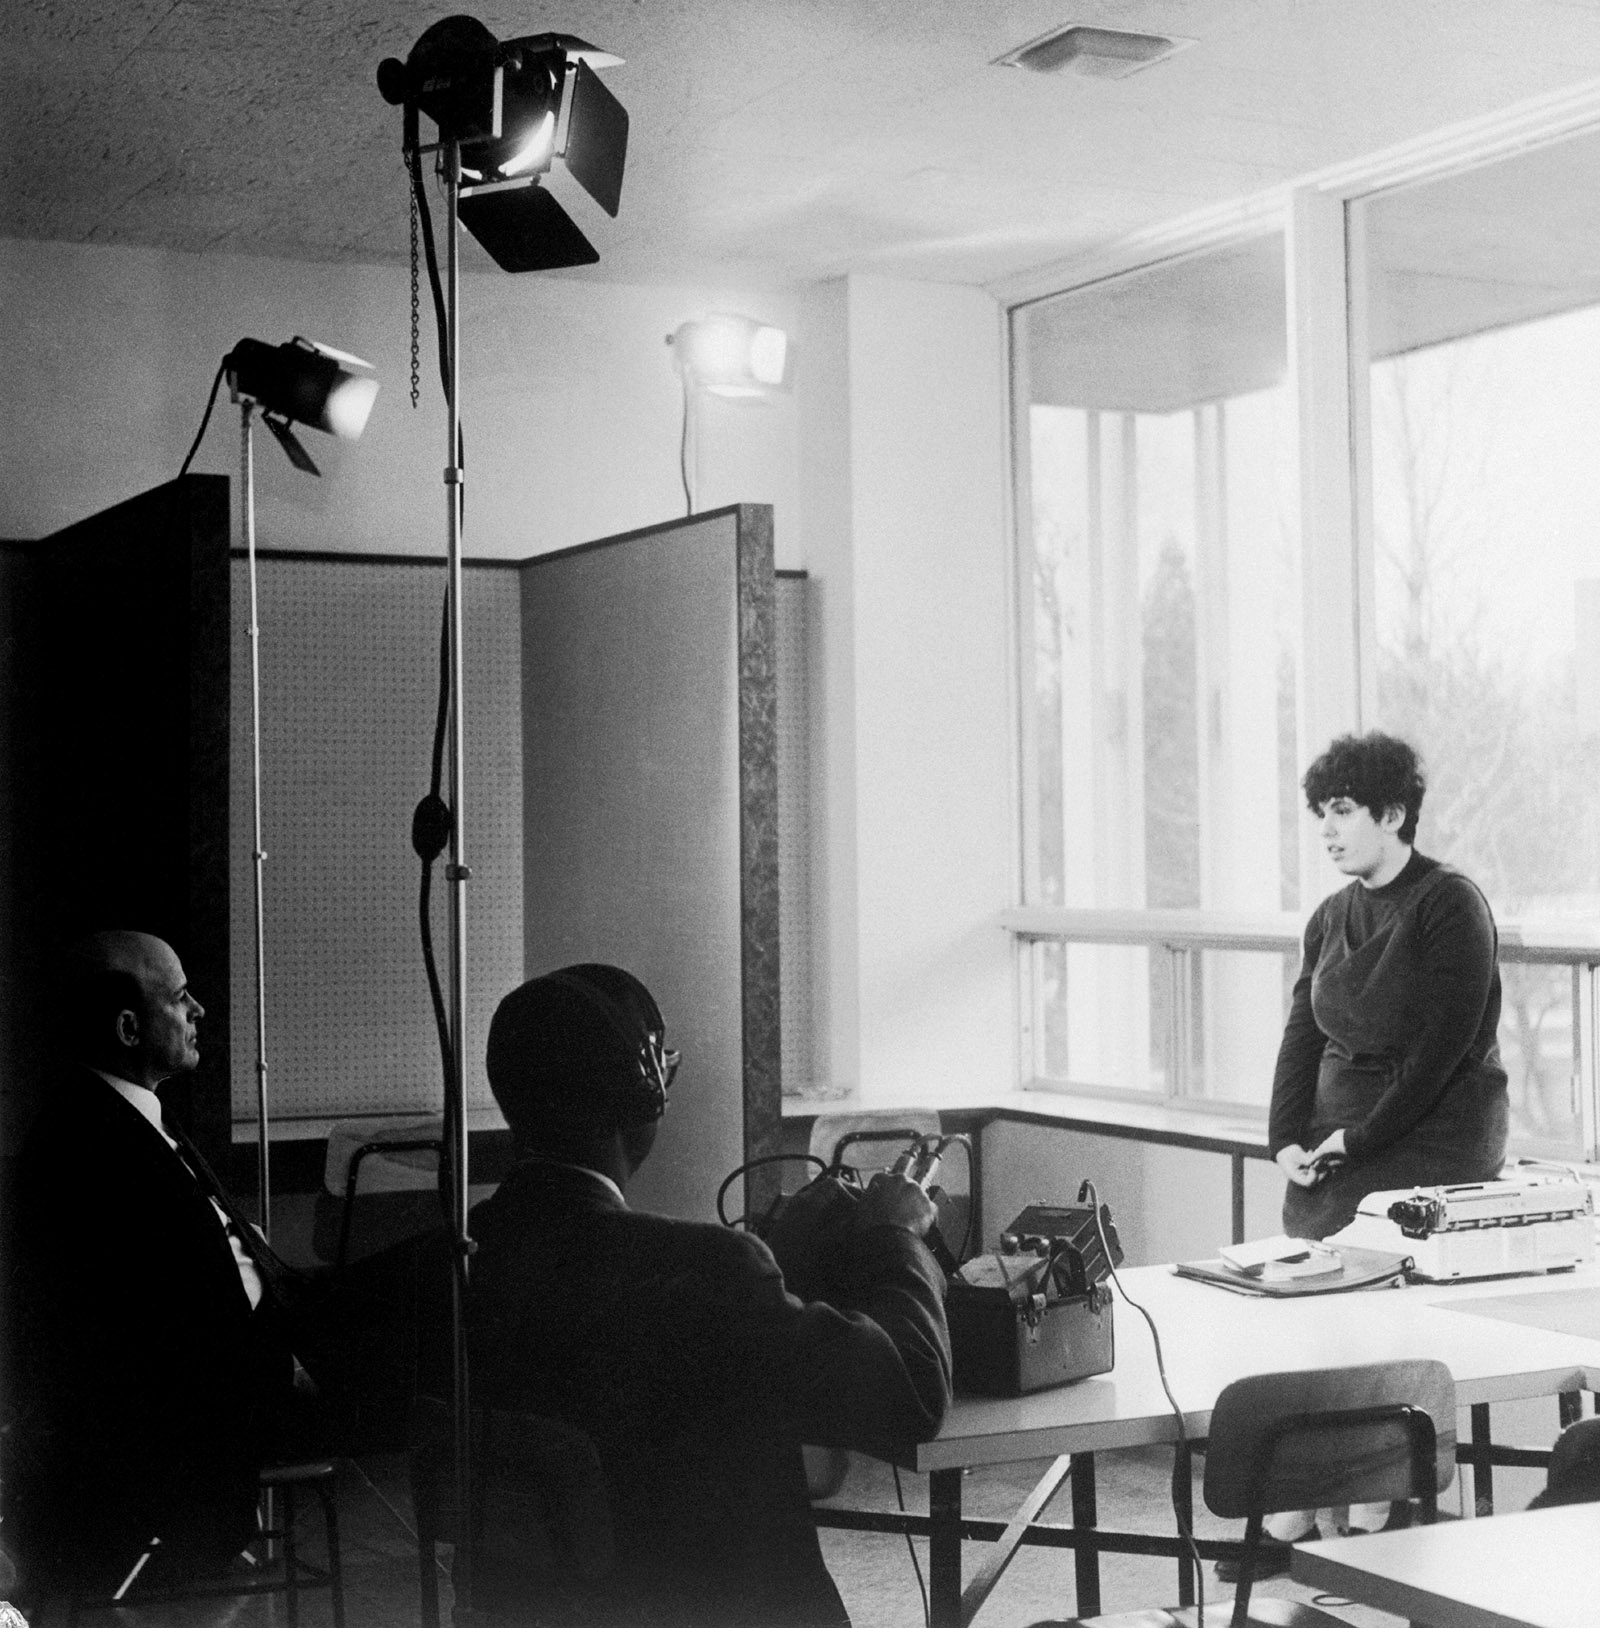 Andrea Dworkin being interviewed by a television crew, 1965